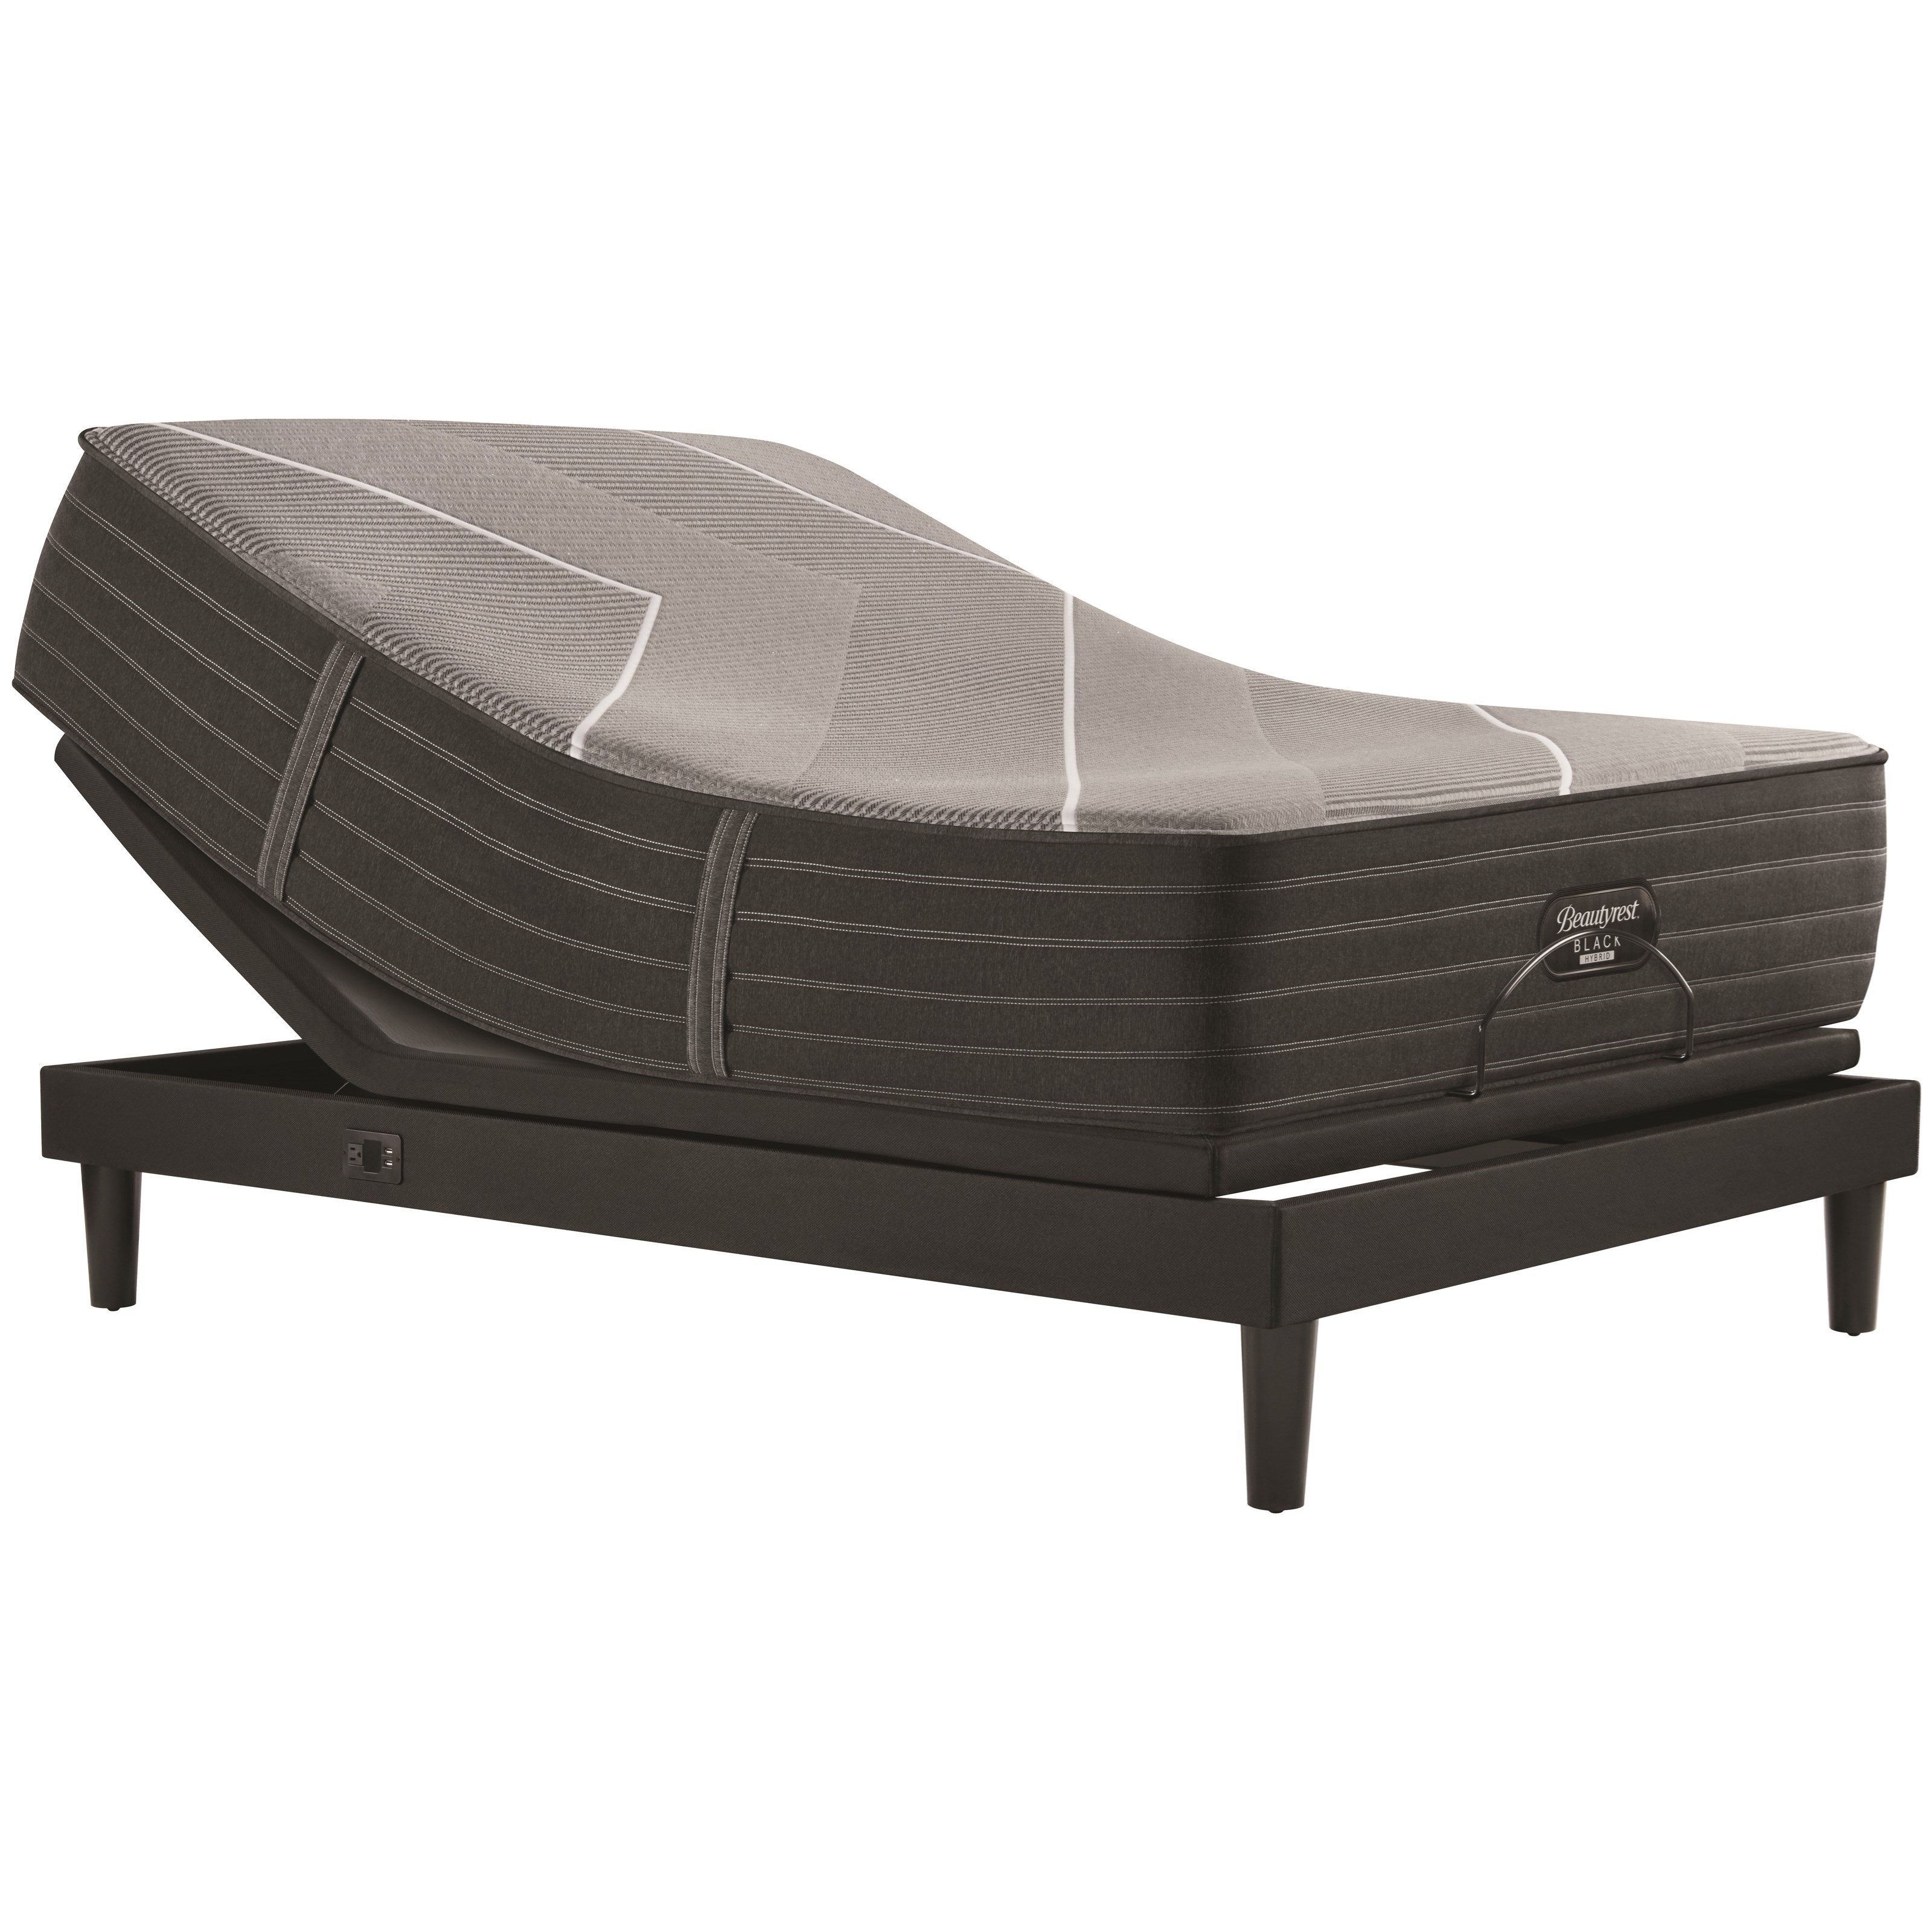 "X-Class Hybrid Firm Cal King 14 1/2"" Firm Hybrid Adj Set by Beautyrest at Walker's Mattress"